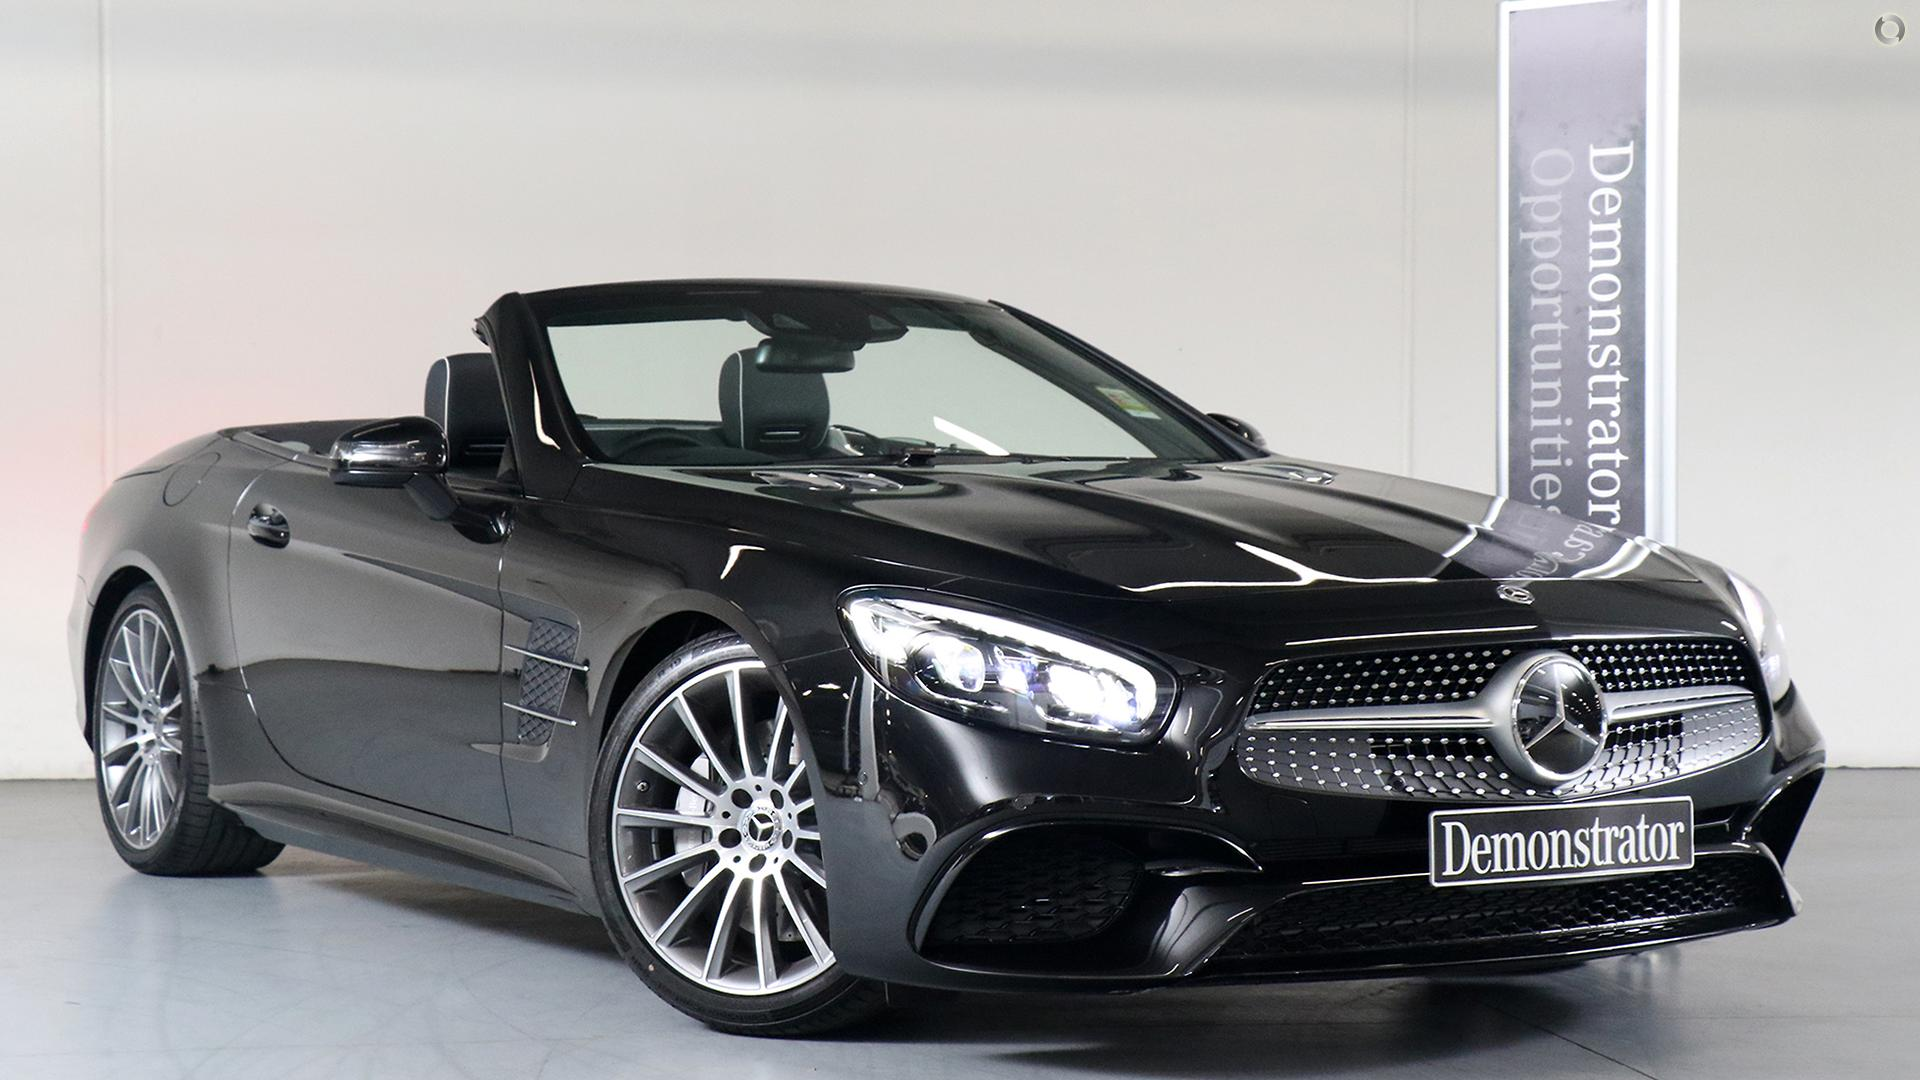 2018 Mercedes-Benz SL 400 Roadster